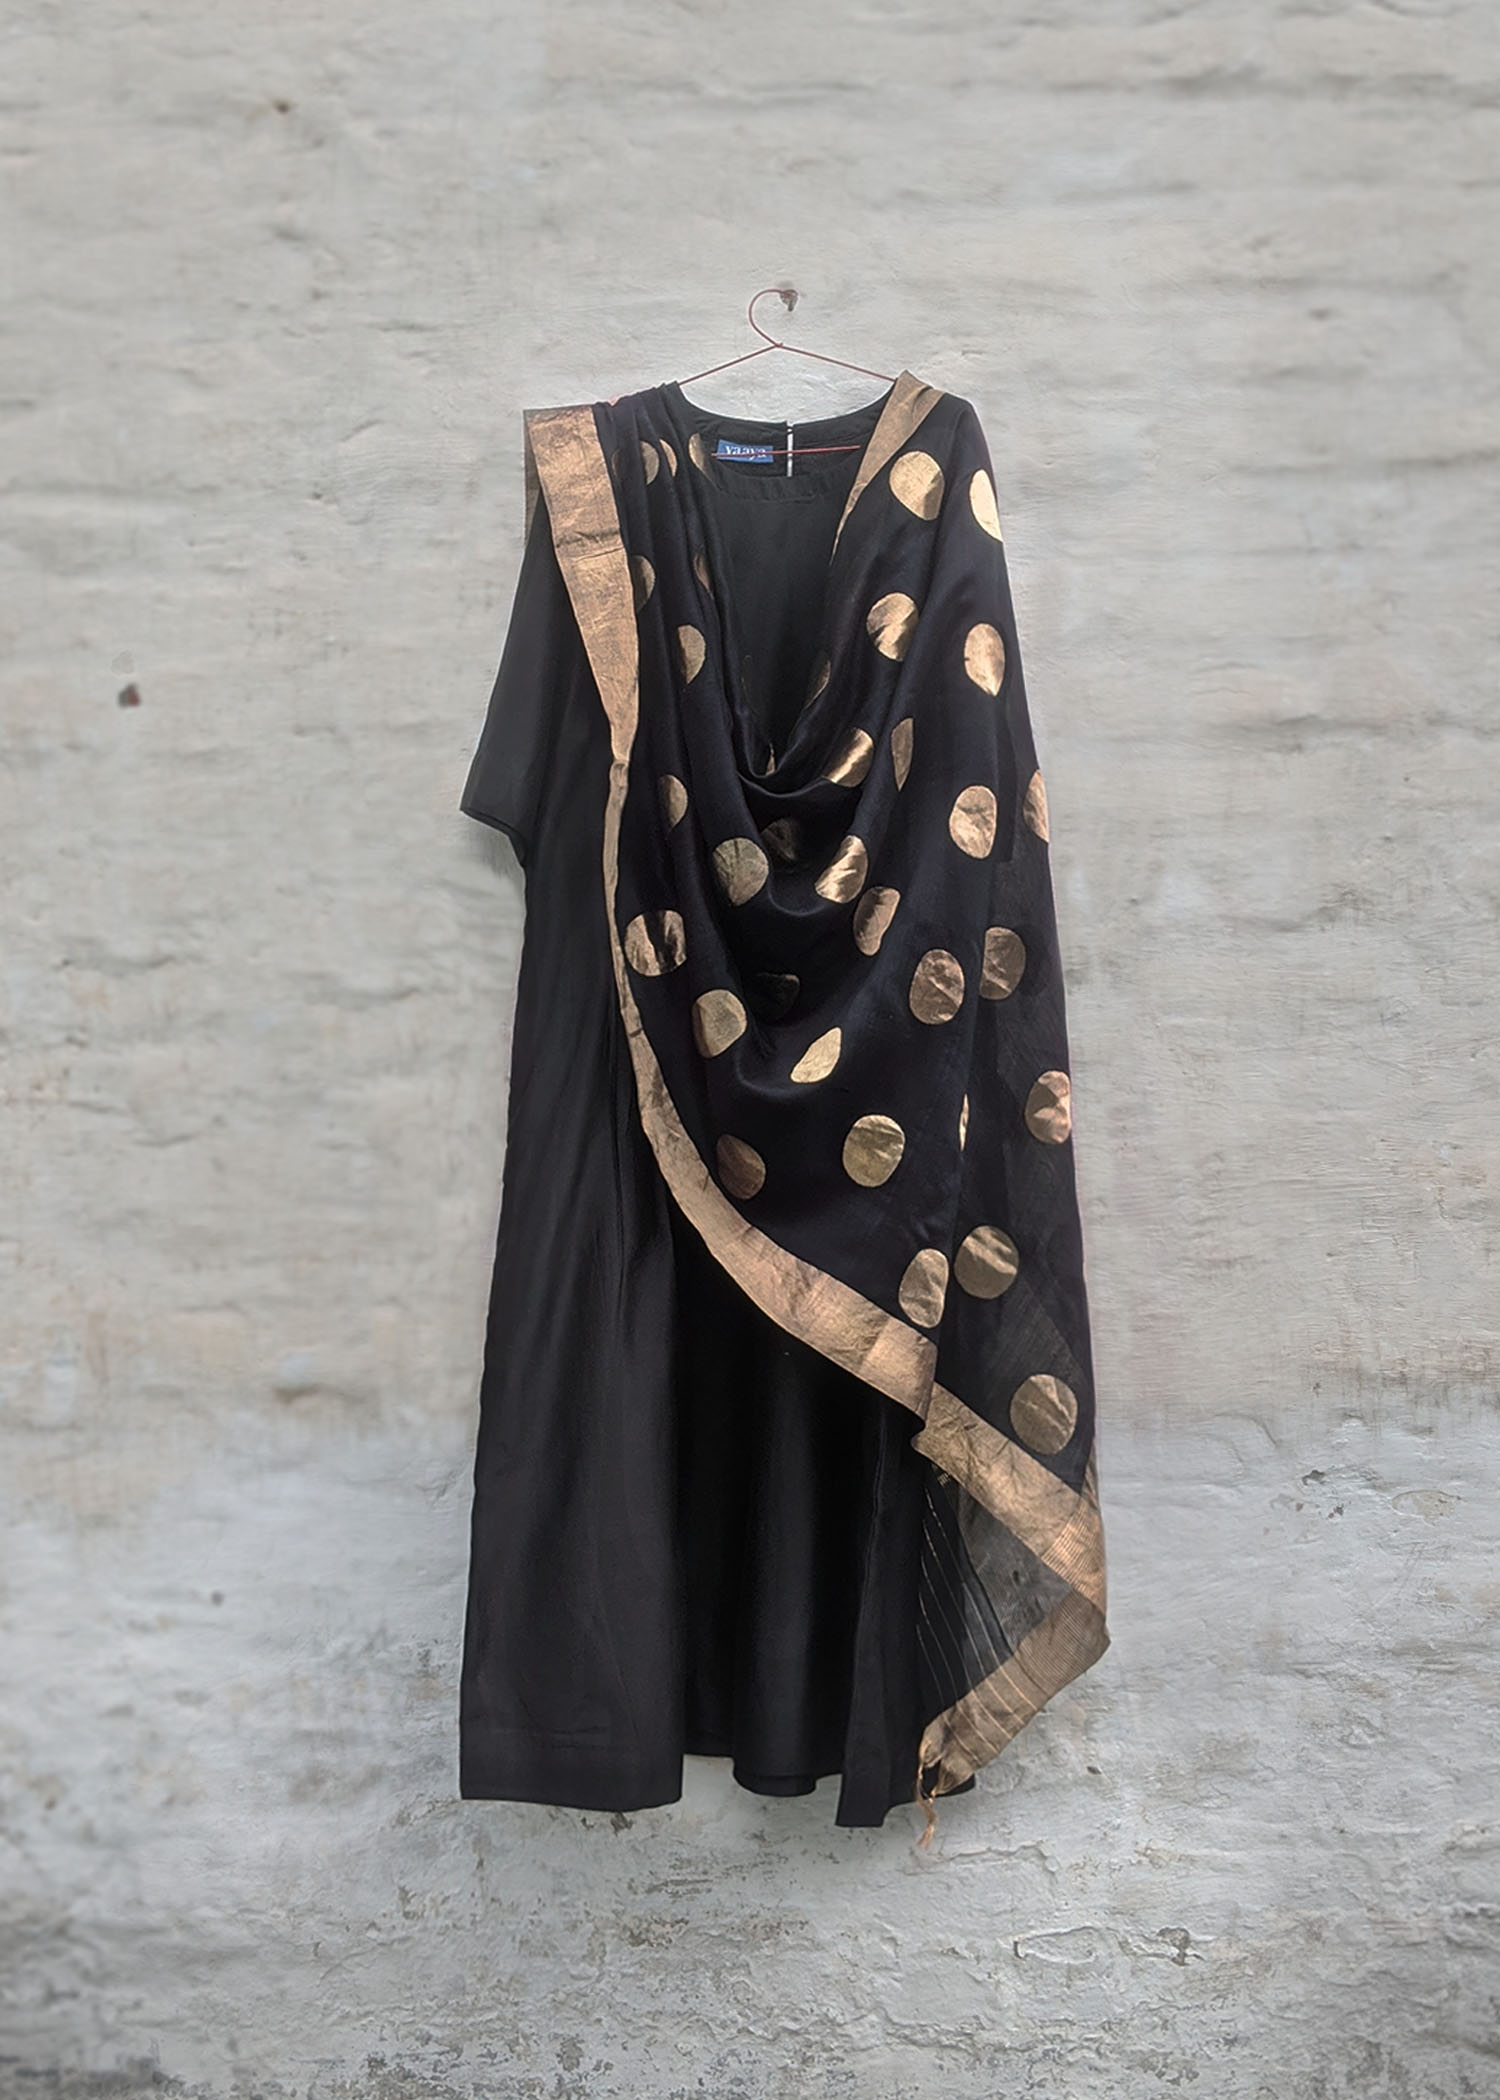 Black & Gold Sikka Booti Silk Chanderi Dupatta with Zari Handwork